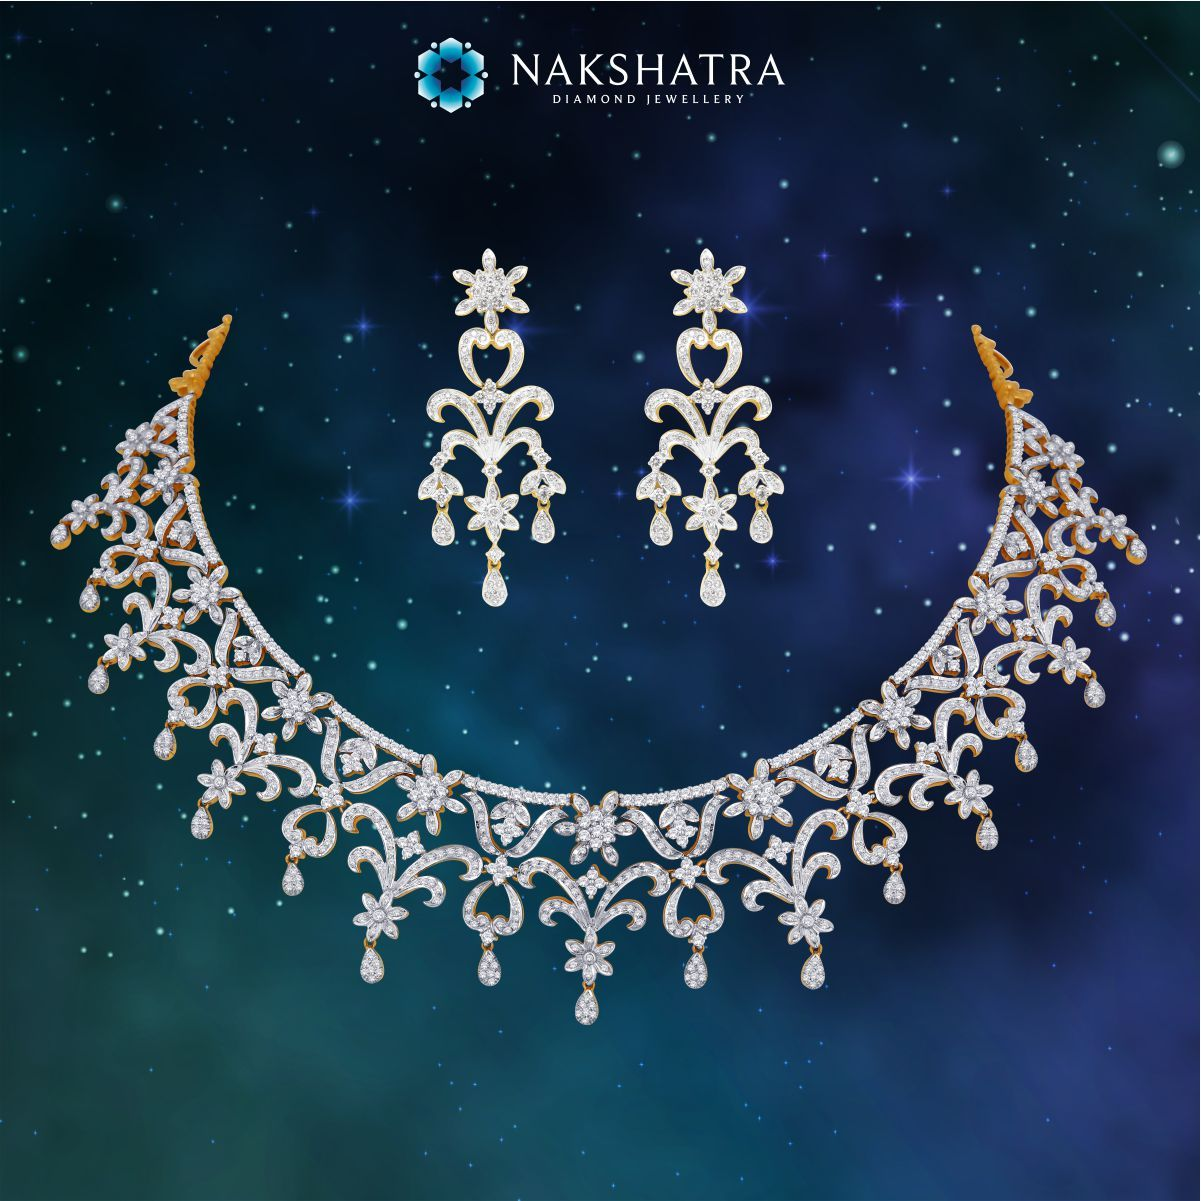 Divine splendour of the heavens is reflected in this Nakshatra diamond necklace and earring set. Ideal for the bride.  #Diamondearrings #Nakshatra #Diamondjewelery #necklaceset #bridaljewelery #bride #weddingjewelery #diamondnecklace